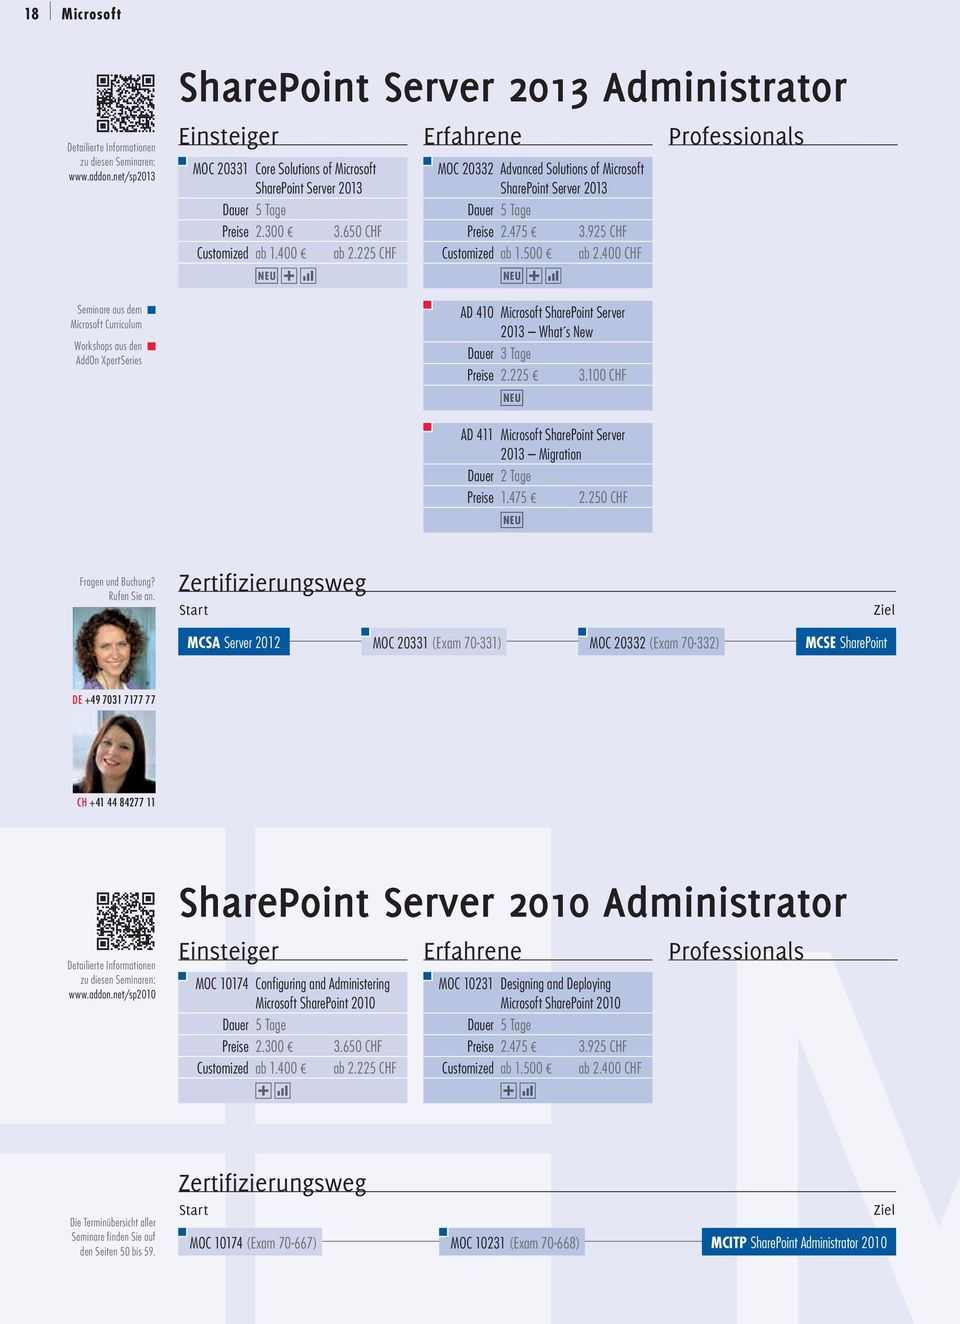 225 CHF MOC 20332 Advanced Solutions of Microsoft SharePoint Server 2013 Preise 2.475 3.925 CHF Customized ab 1.500 ab 2.